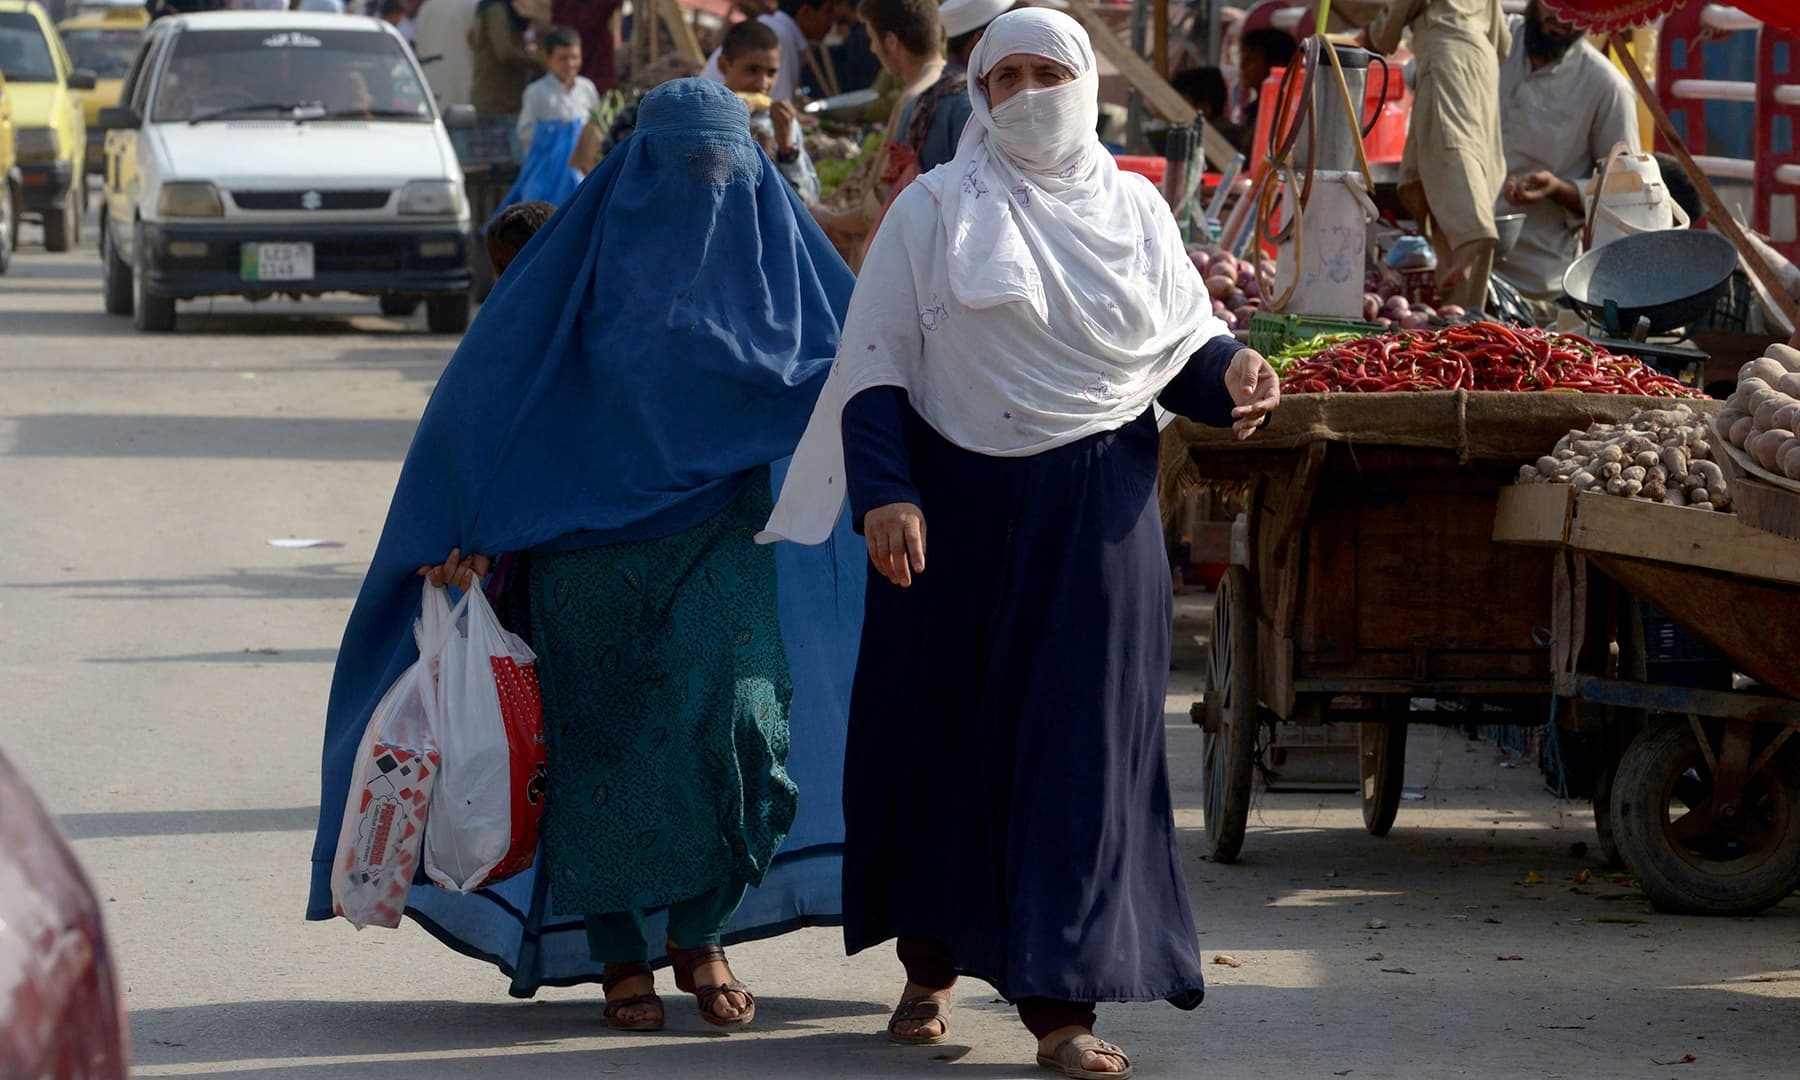 Afghan refugee women walk at a market in Peshawar. — AFP